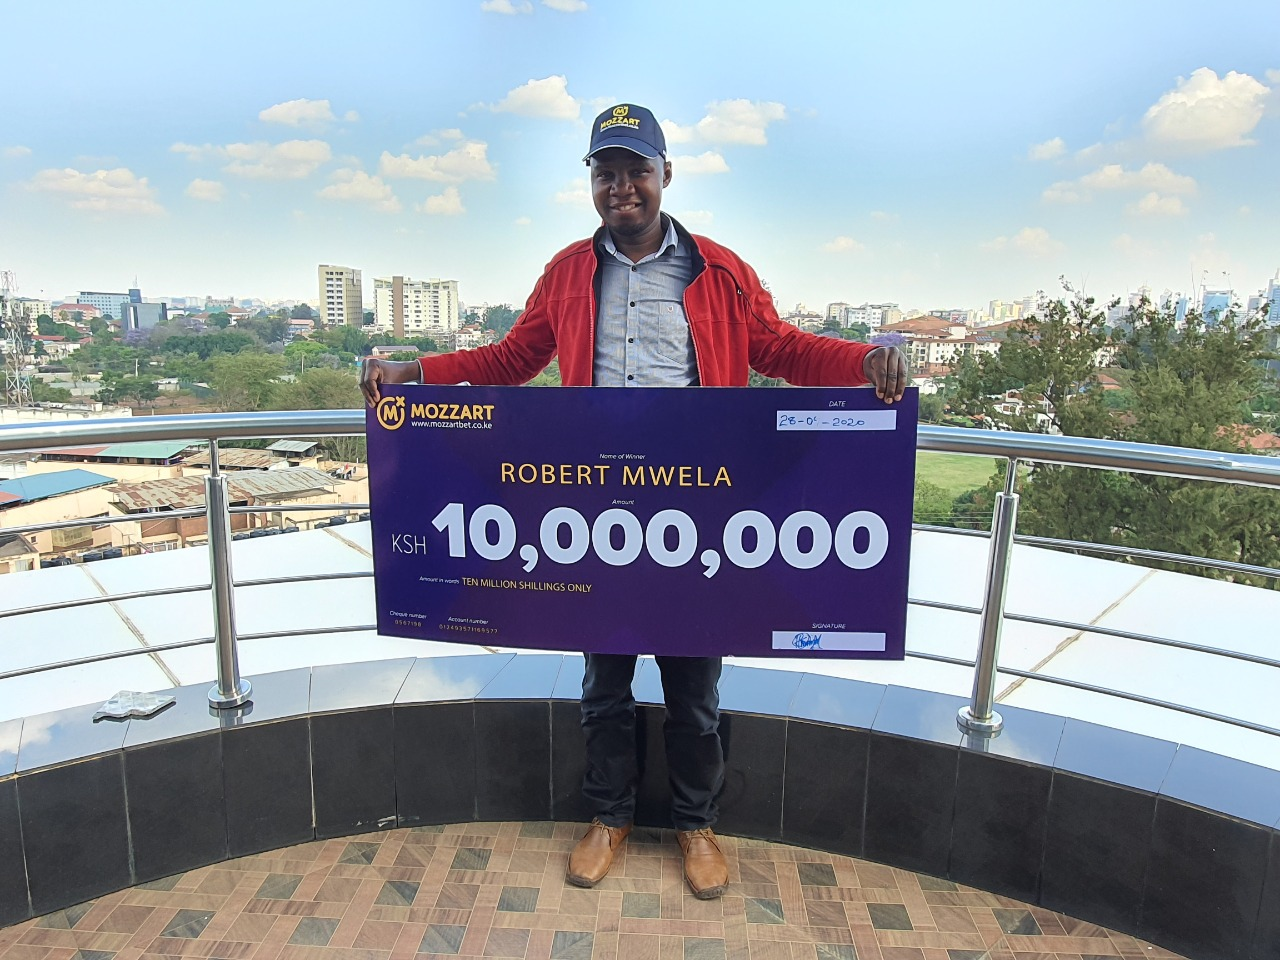 The newest millionaire in town - Mr. Robert Mwela